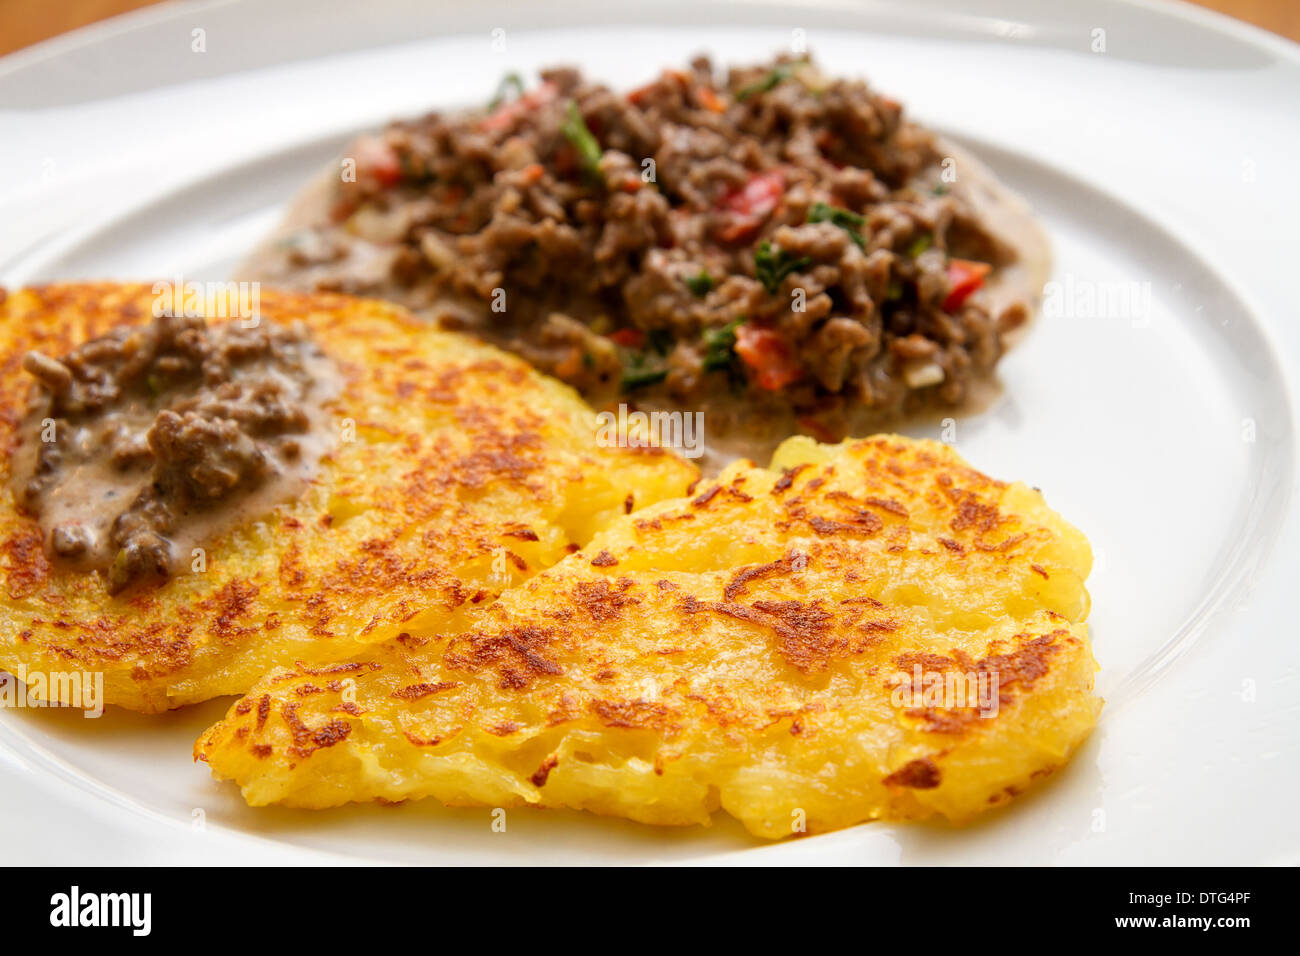 potato fritter with meat sauce - Stock Image